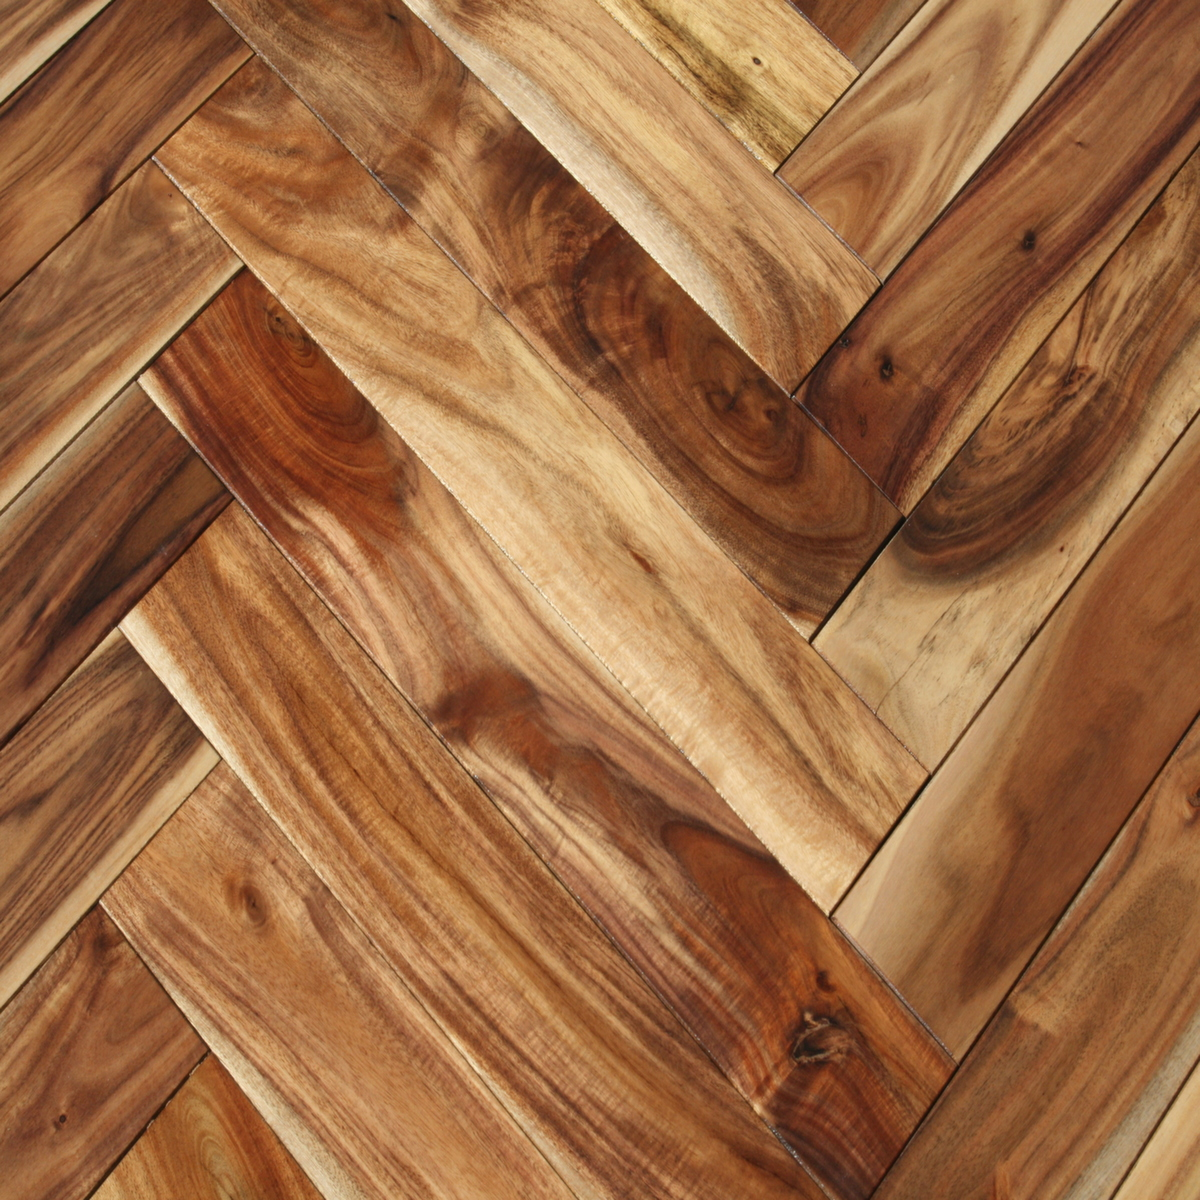 Wood Flooring Product : Acacia natural herringbone hardwood flooring unique wood